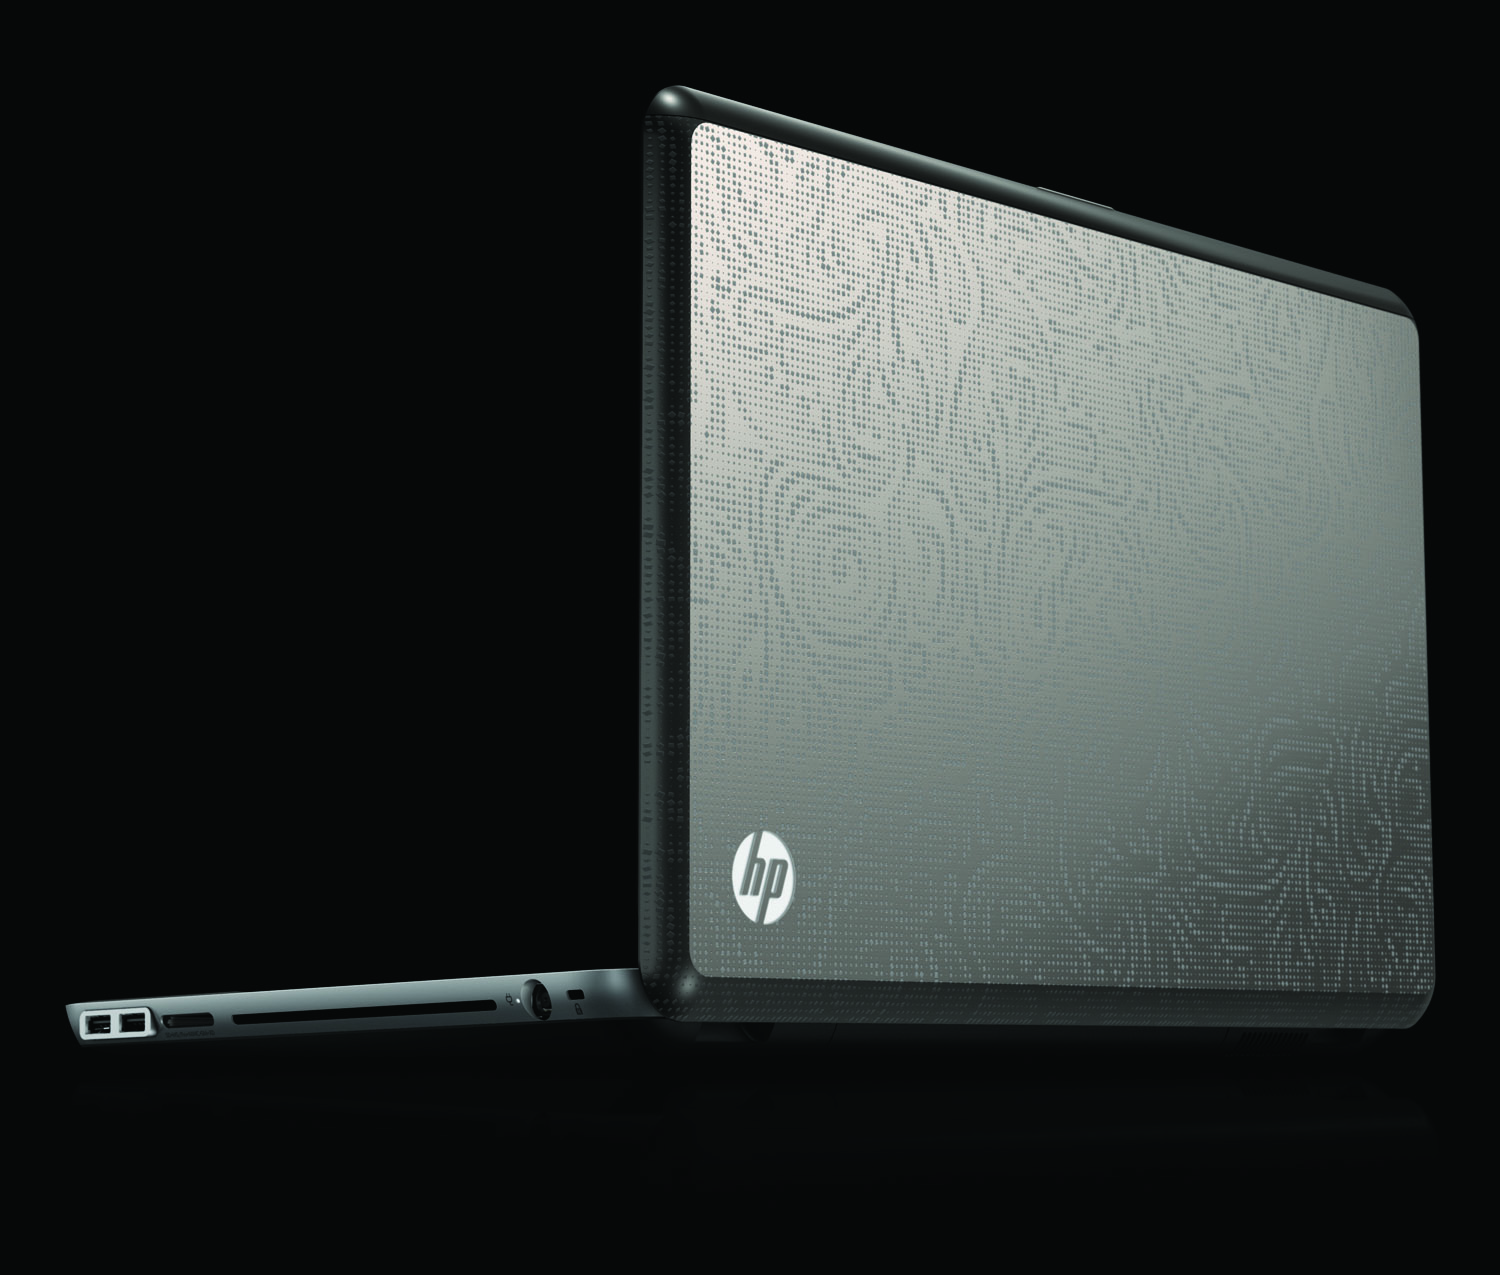 HP Envy 17, rear left open on black